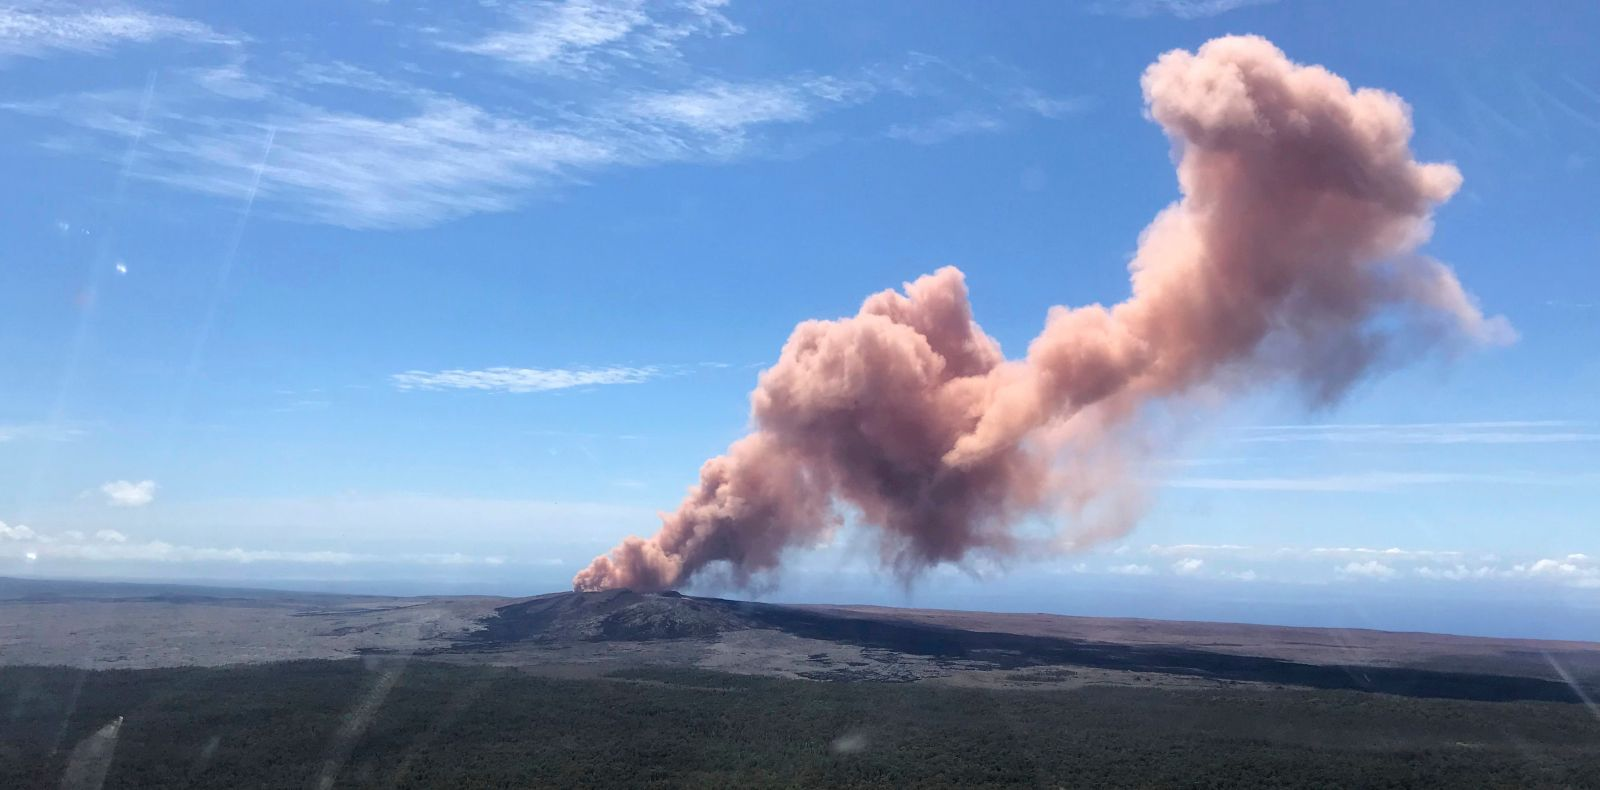 The Kilauea volcano on Hawaii's Big Island erupted late Thursday afternoon with lava spewing into residential areas and cutting through the forest.